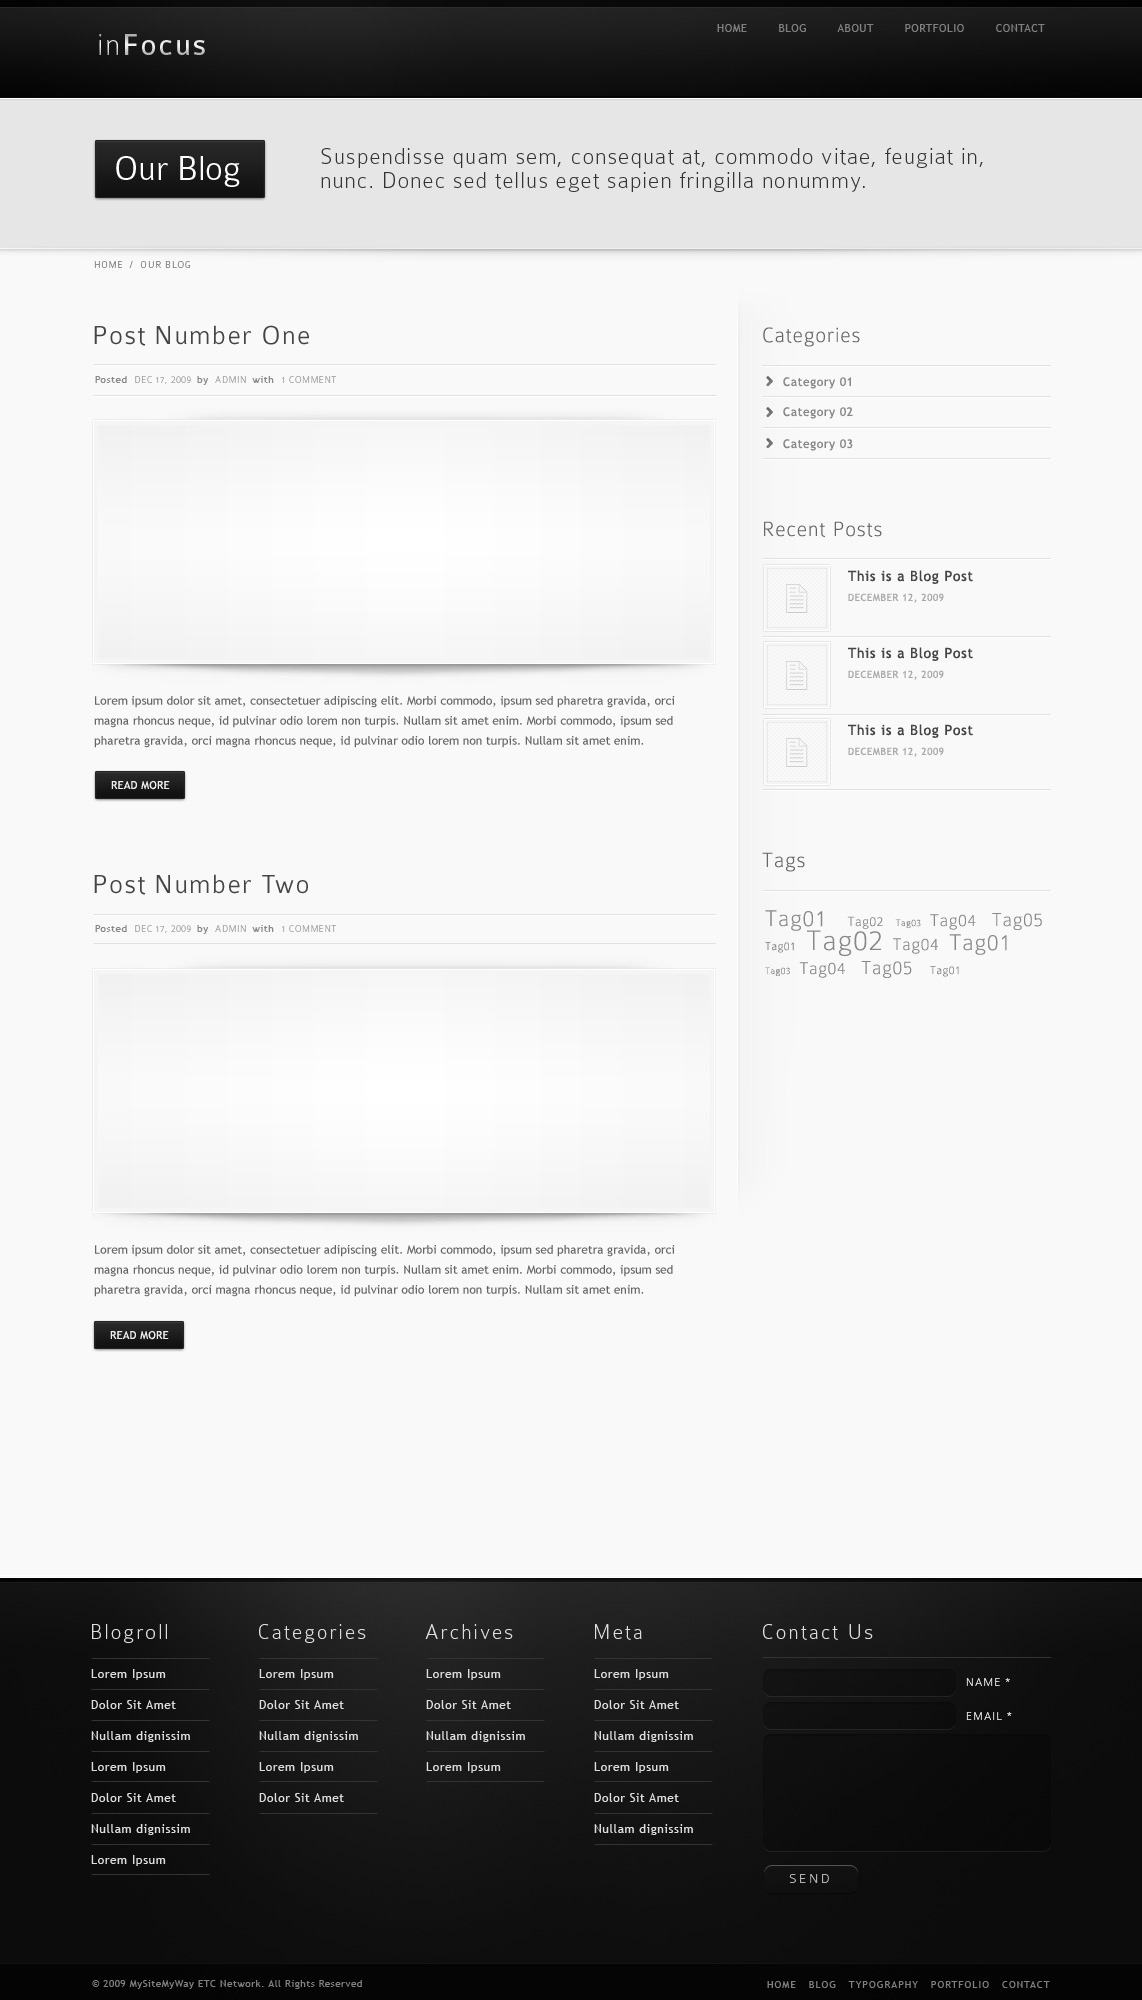 inFocus - Powerful Professional WordPress Theme